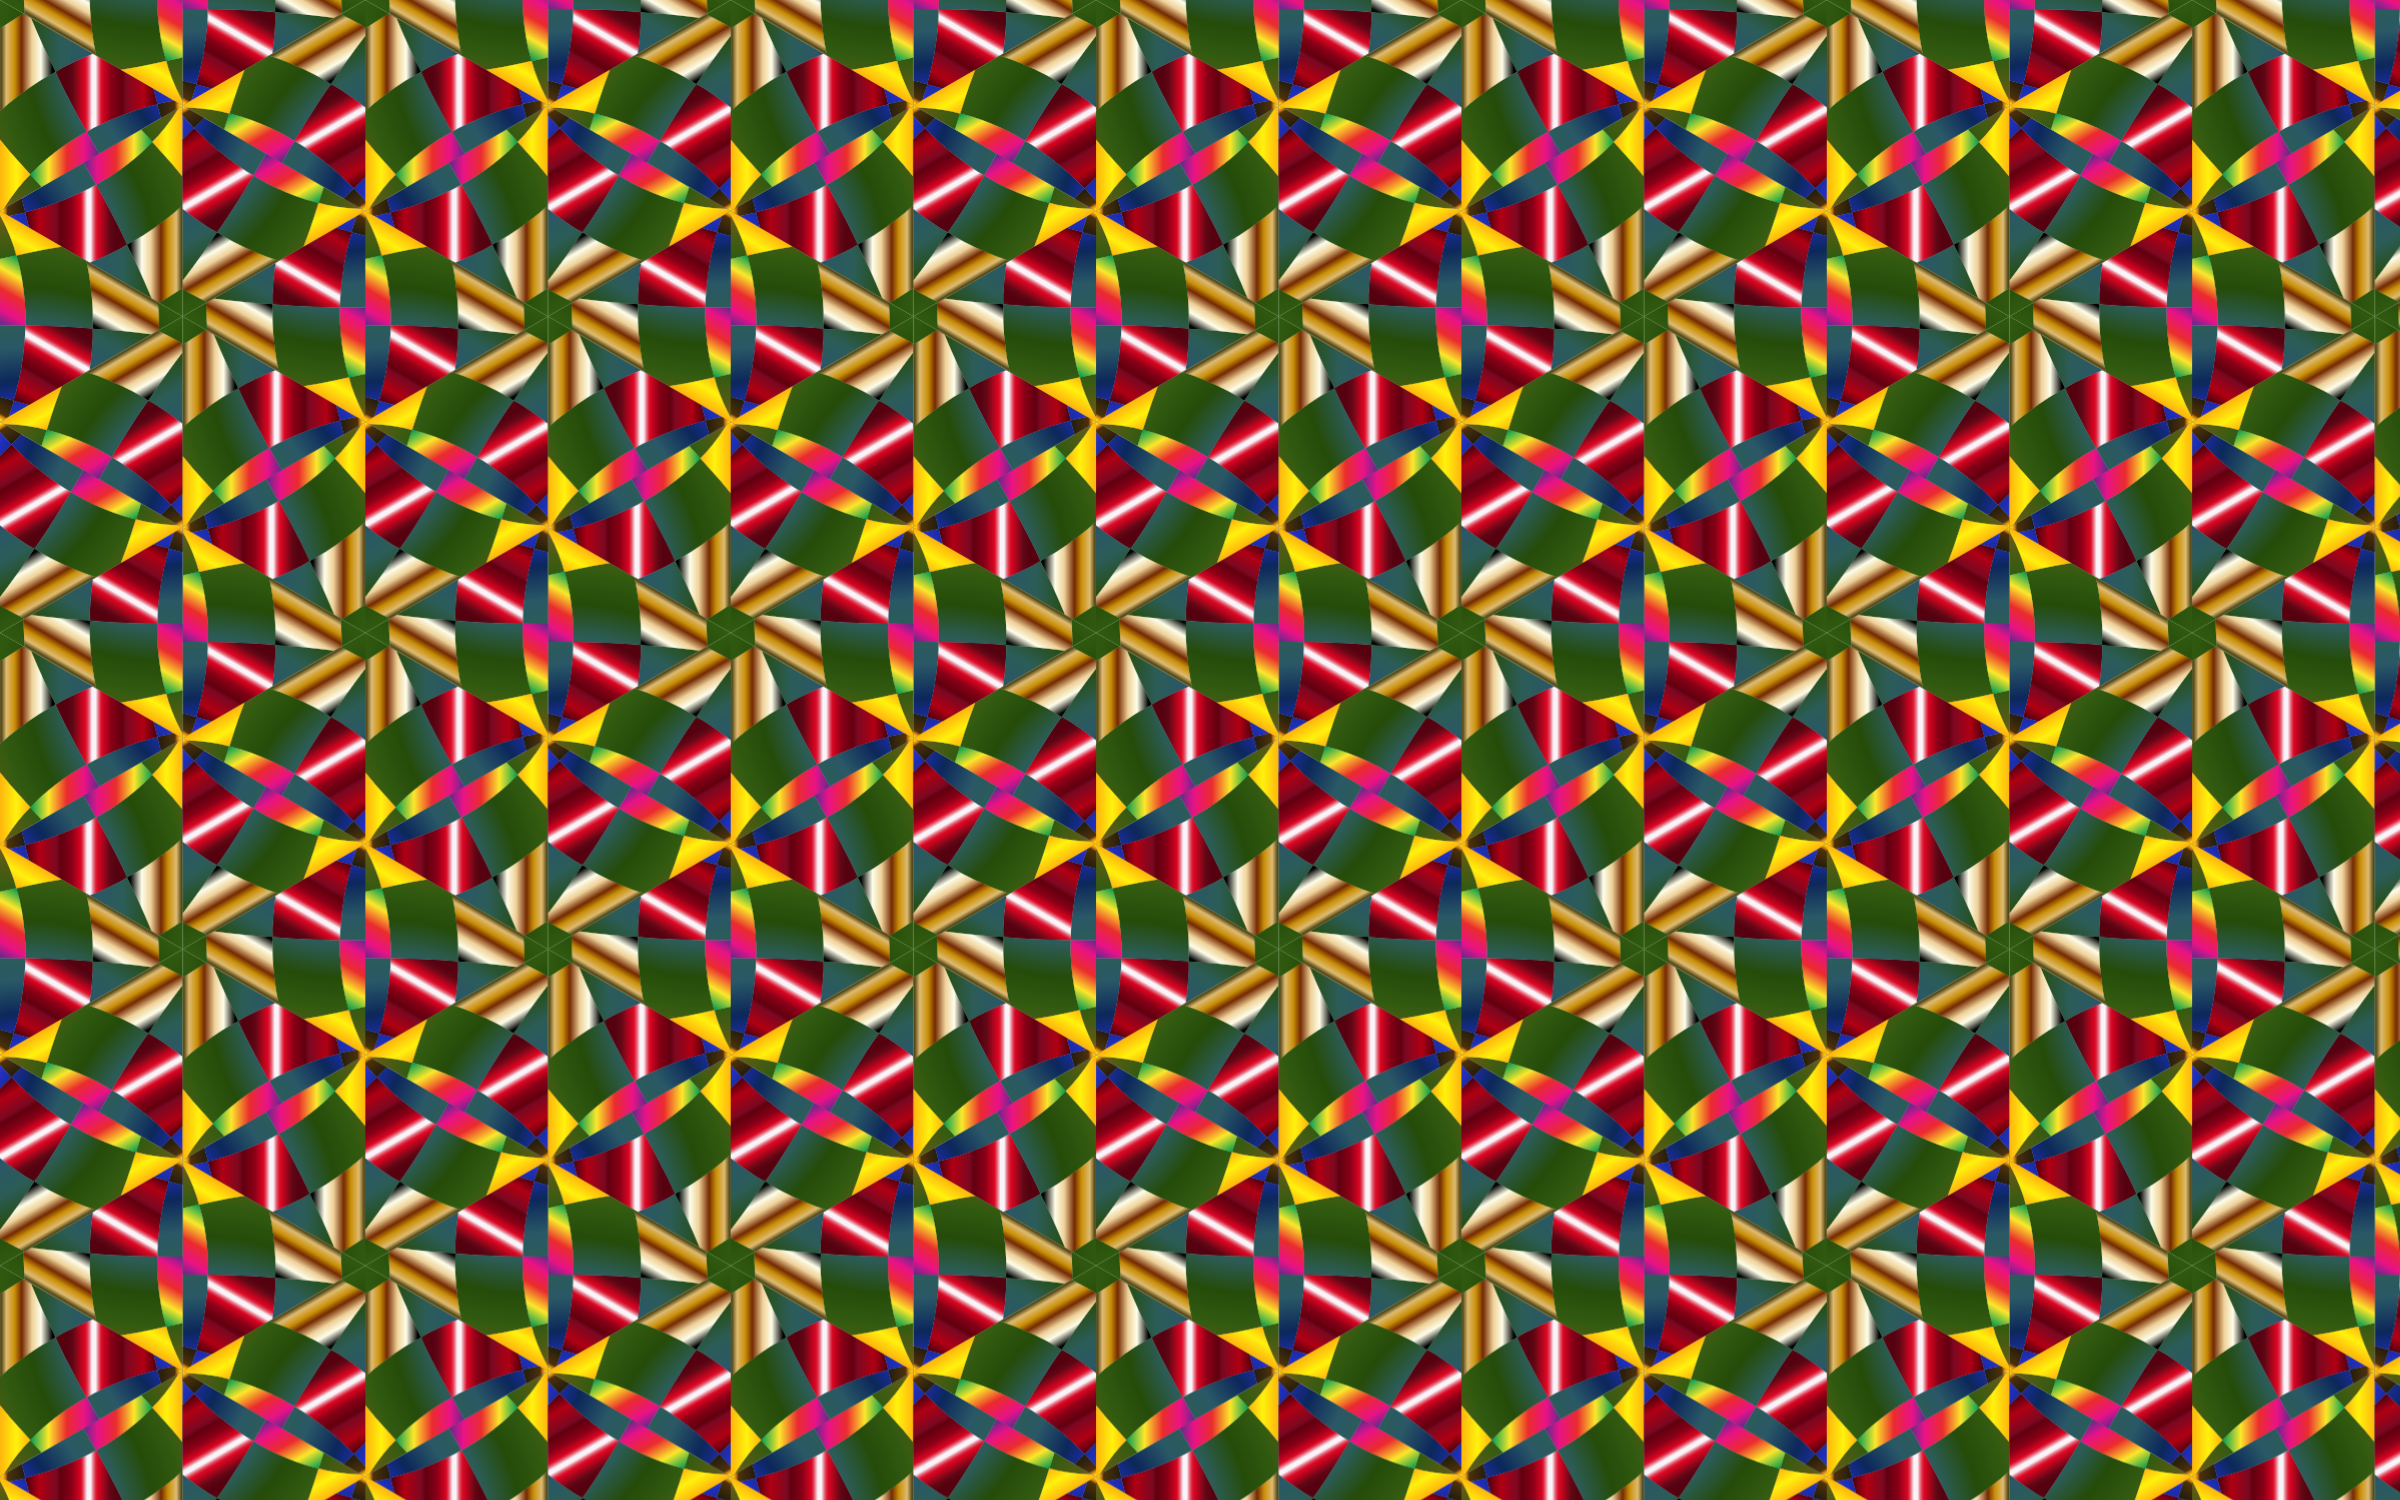 Seamless Pattern 86 by GDJ